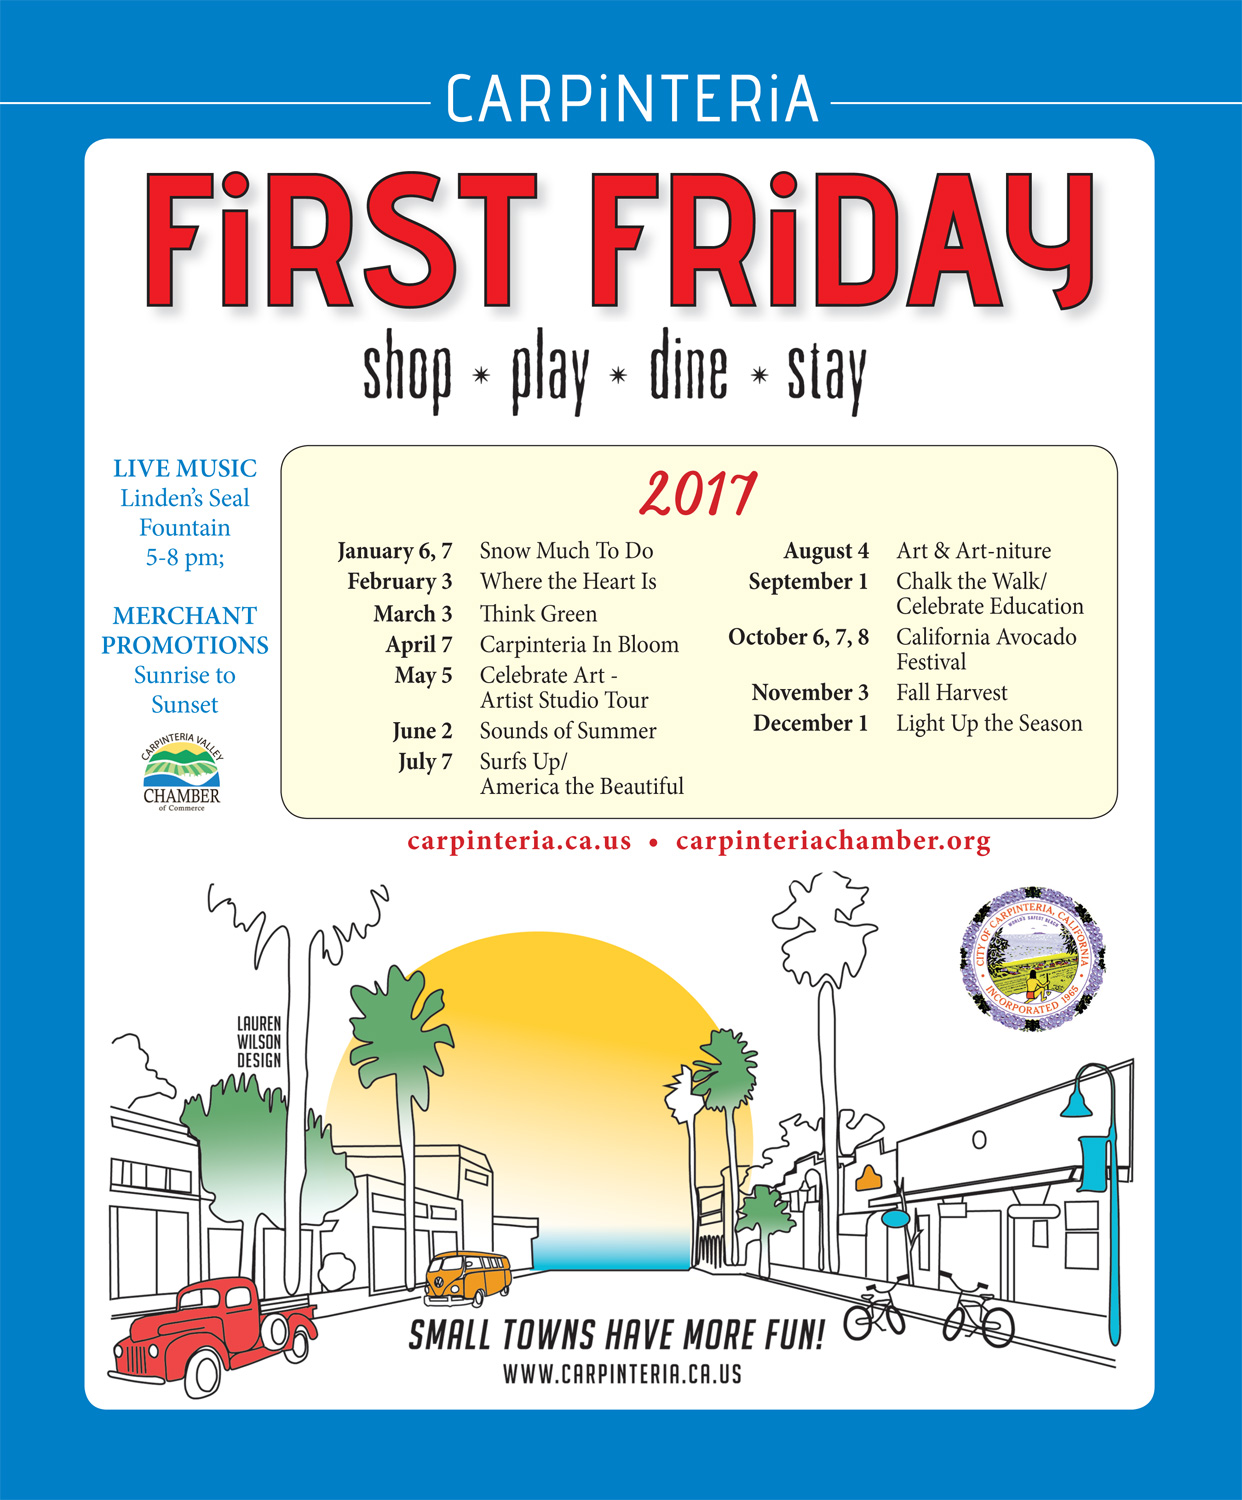 First Friday - Carpinteria In Bloom